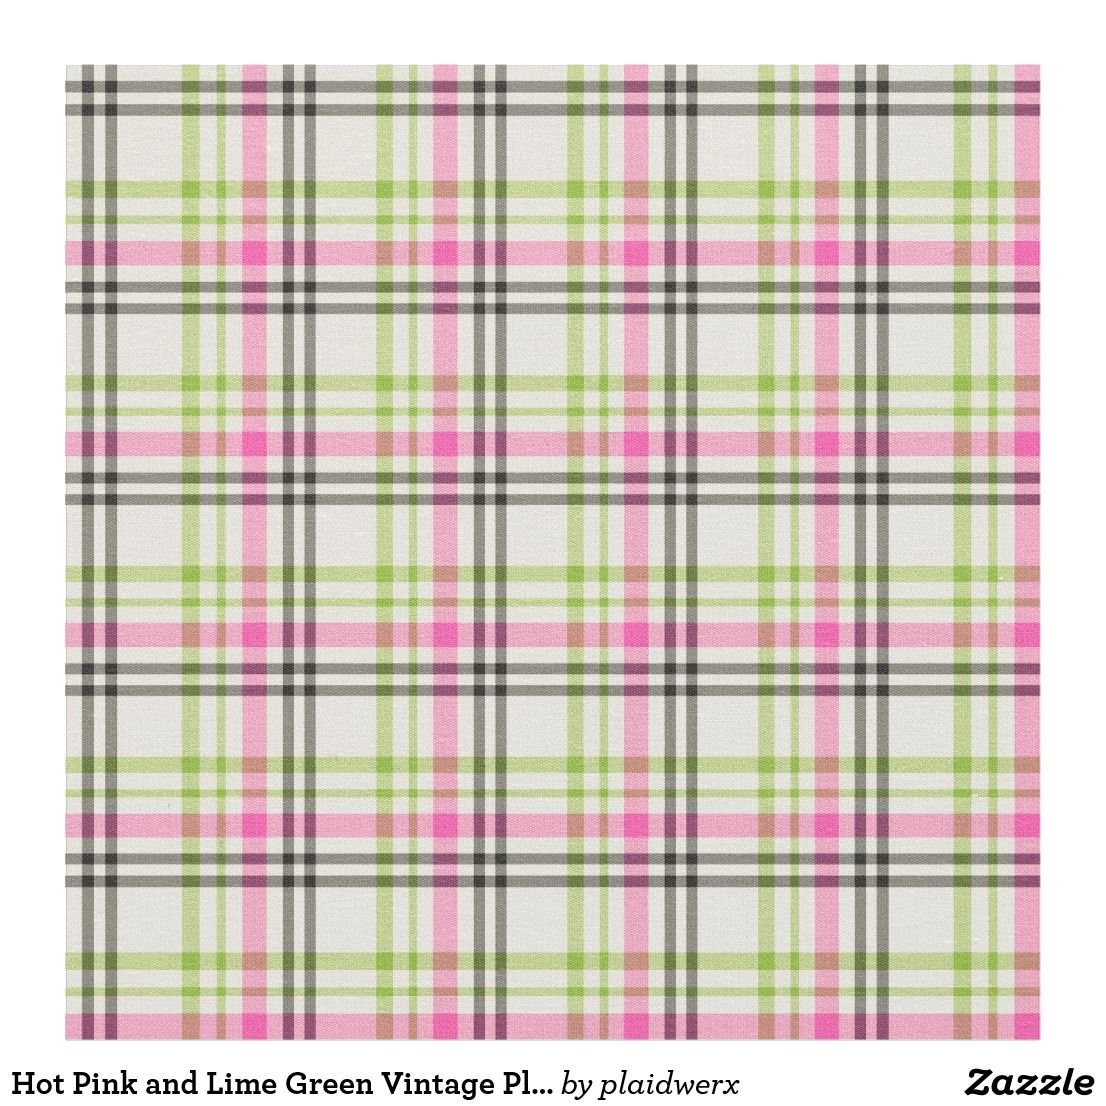 Hot Pink And Lime Green Vintage Plaid Fabric Vintage Plaid Plaid Fabric Lime Green